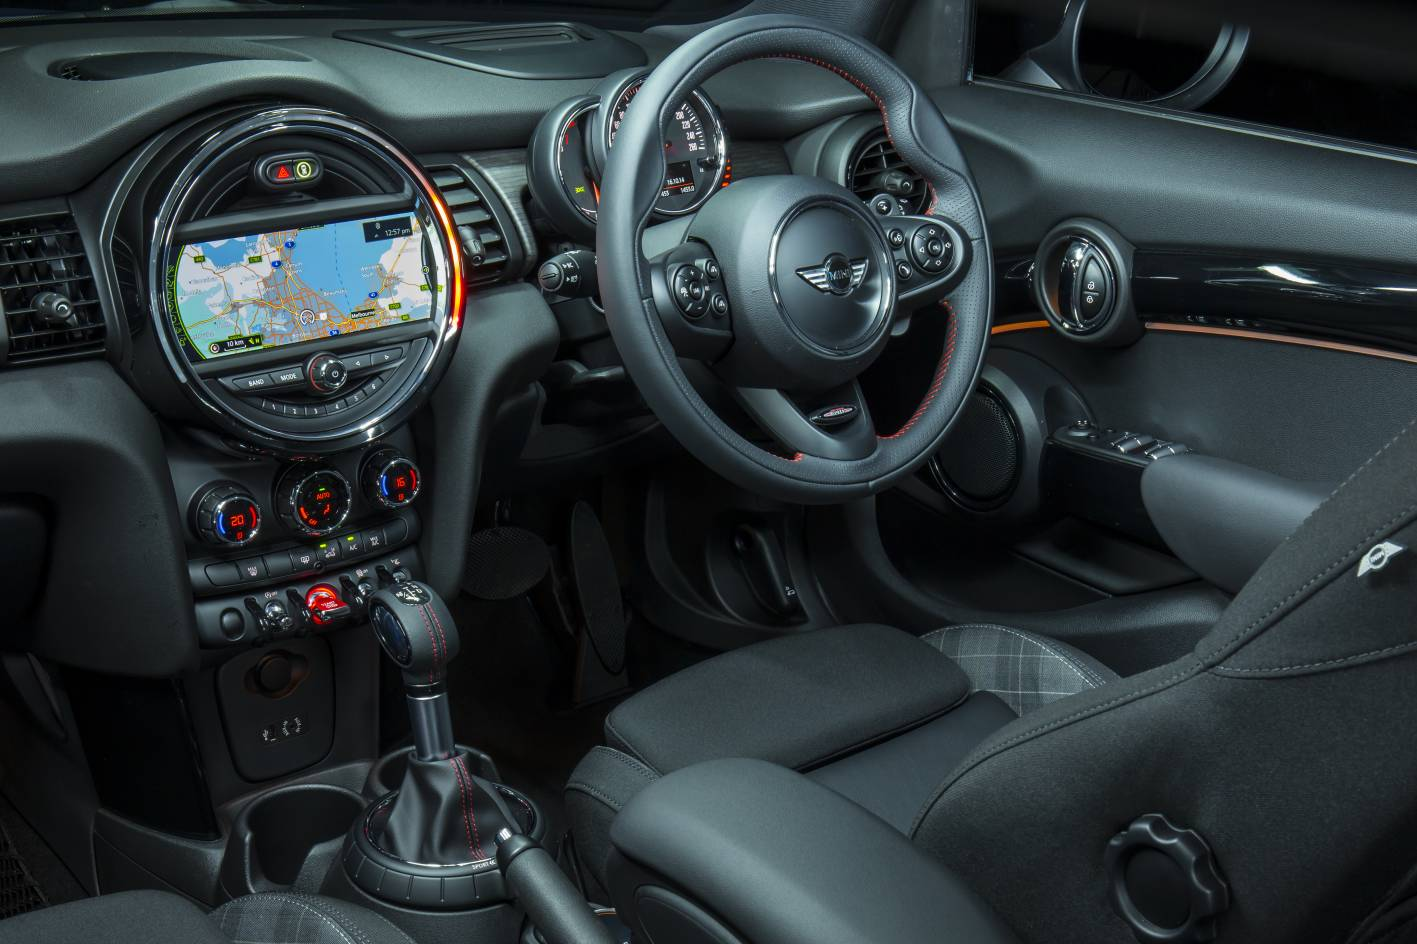 Mini Cooper S 5 Door Interior Forcegt Com